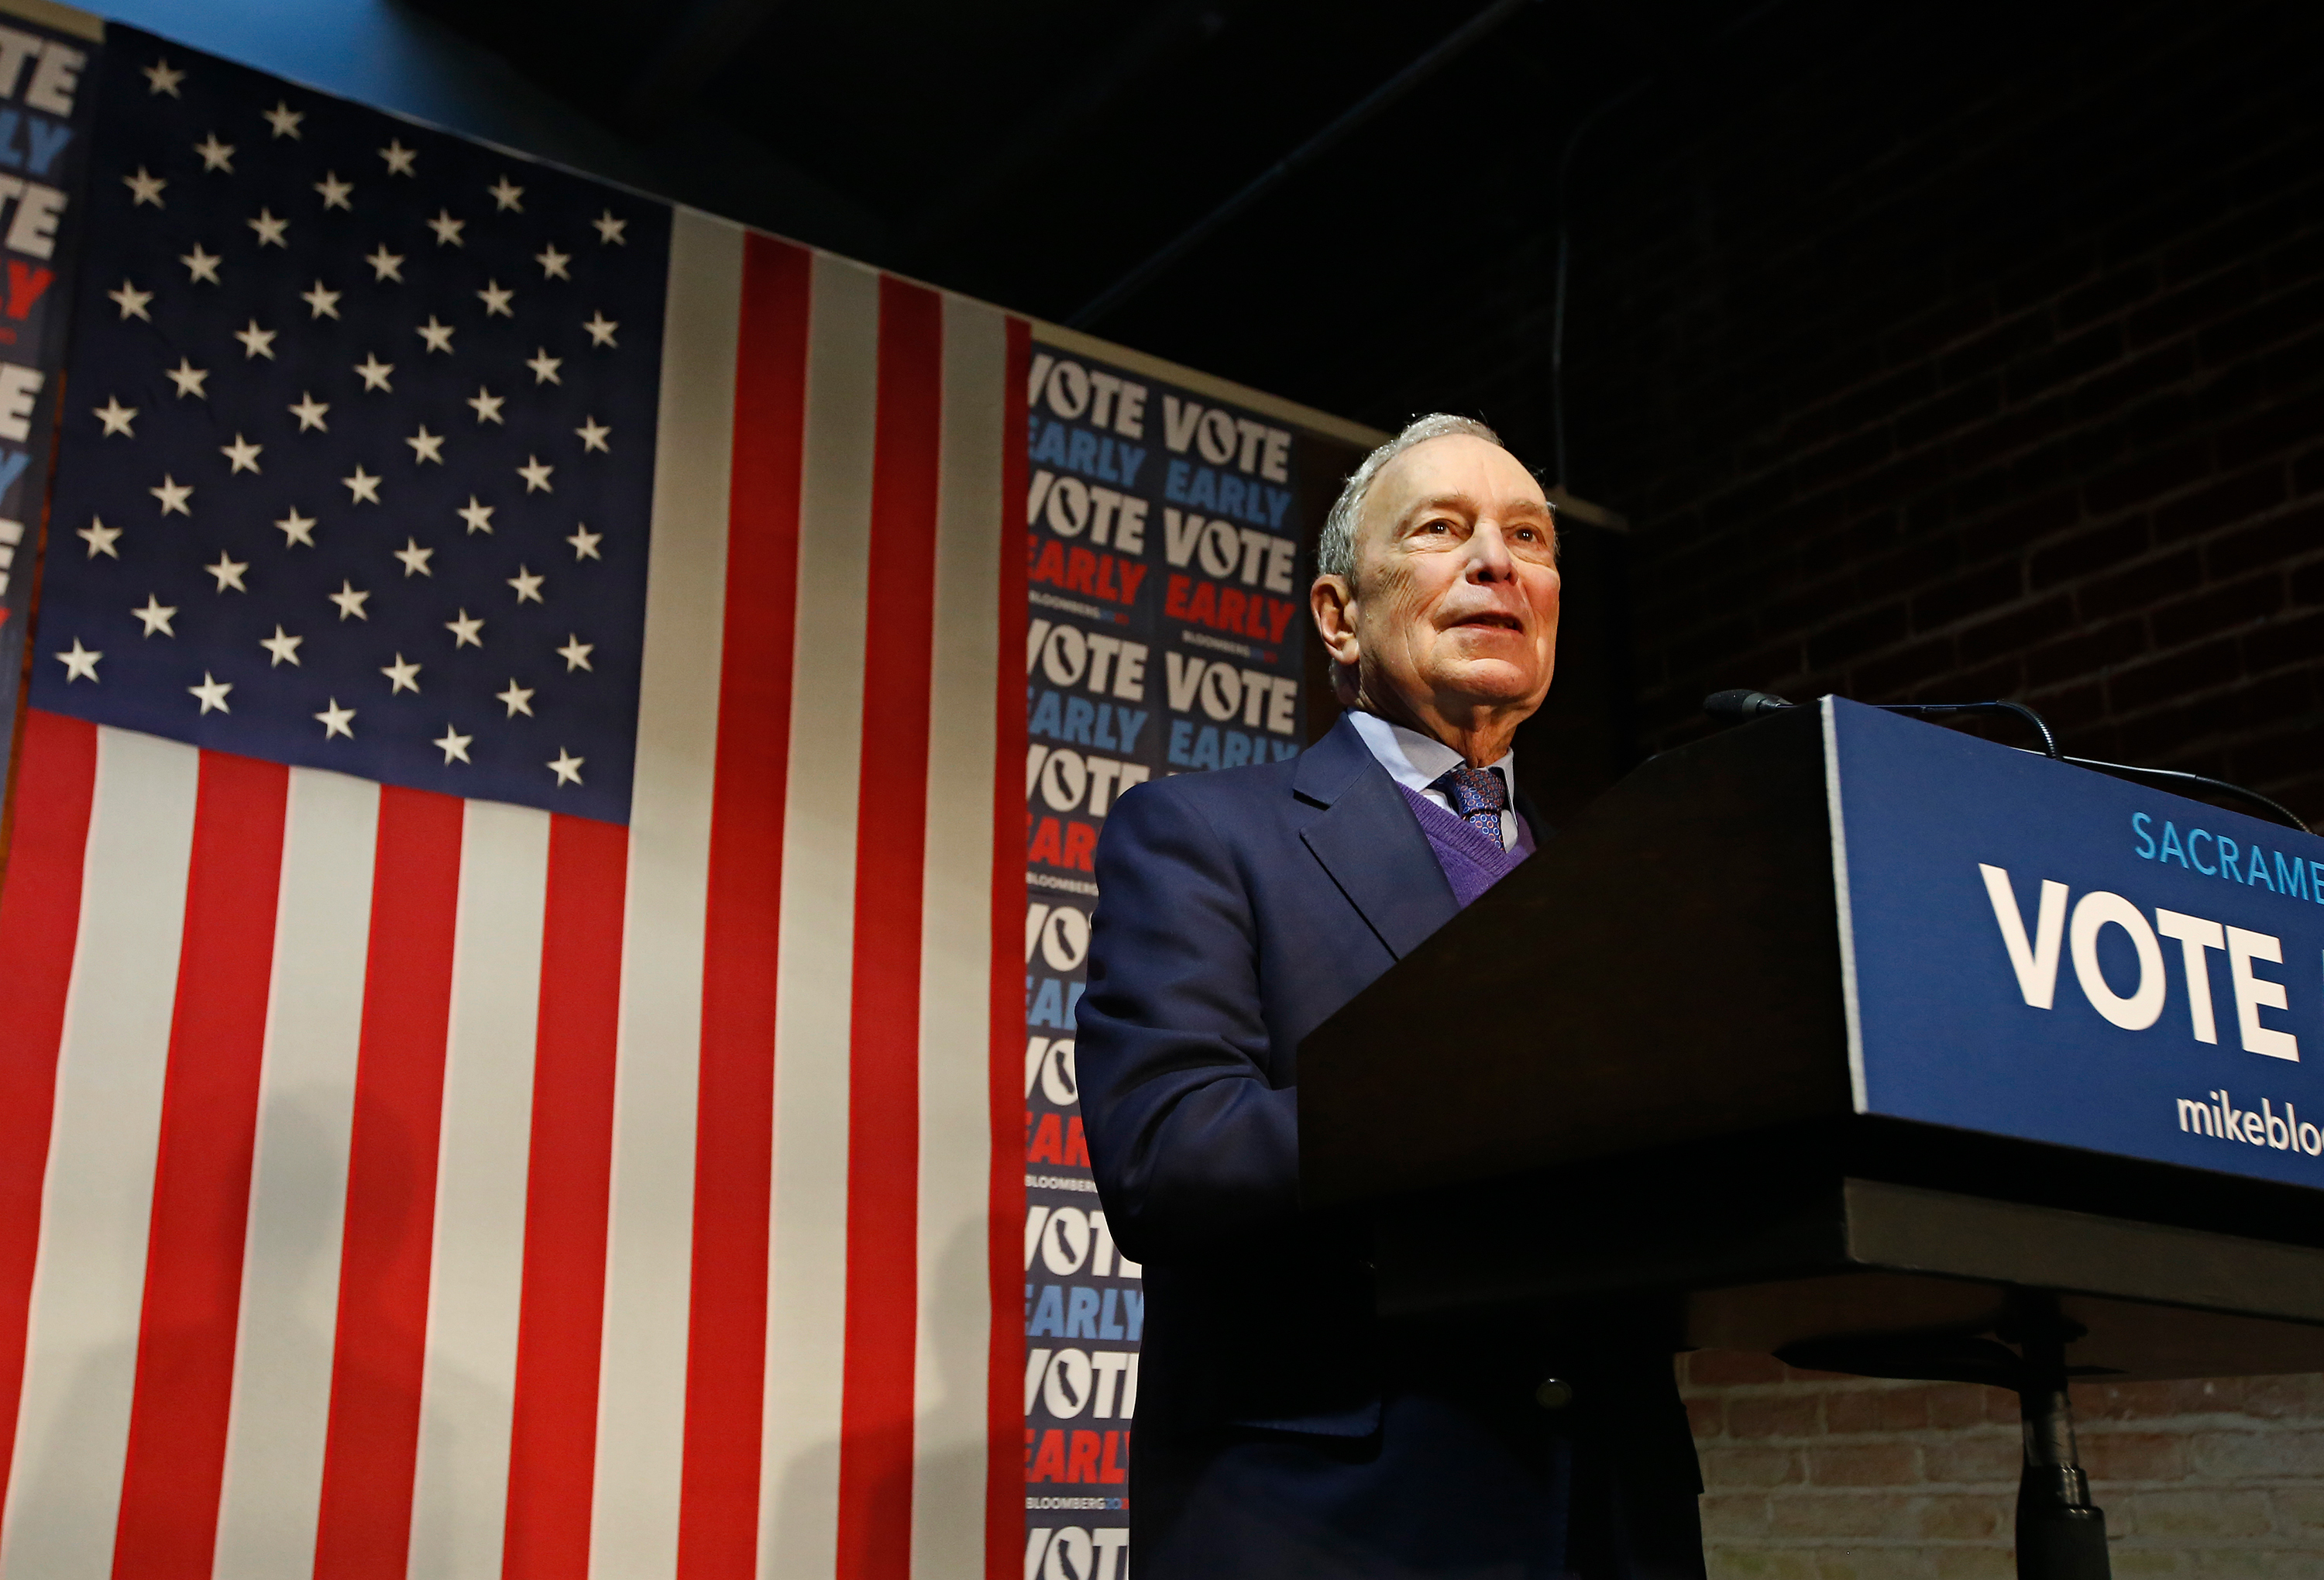 Bloomberg once said Social Security was the biggest Ponzi scheme and argued for cuts to entitlements